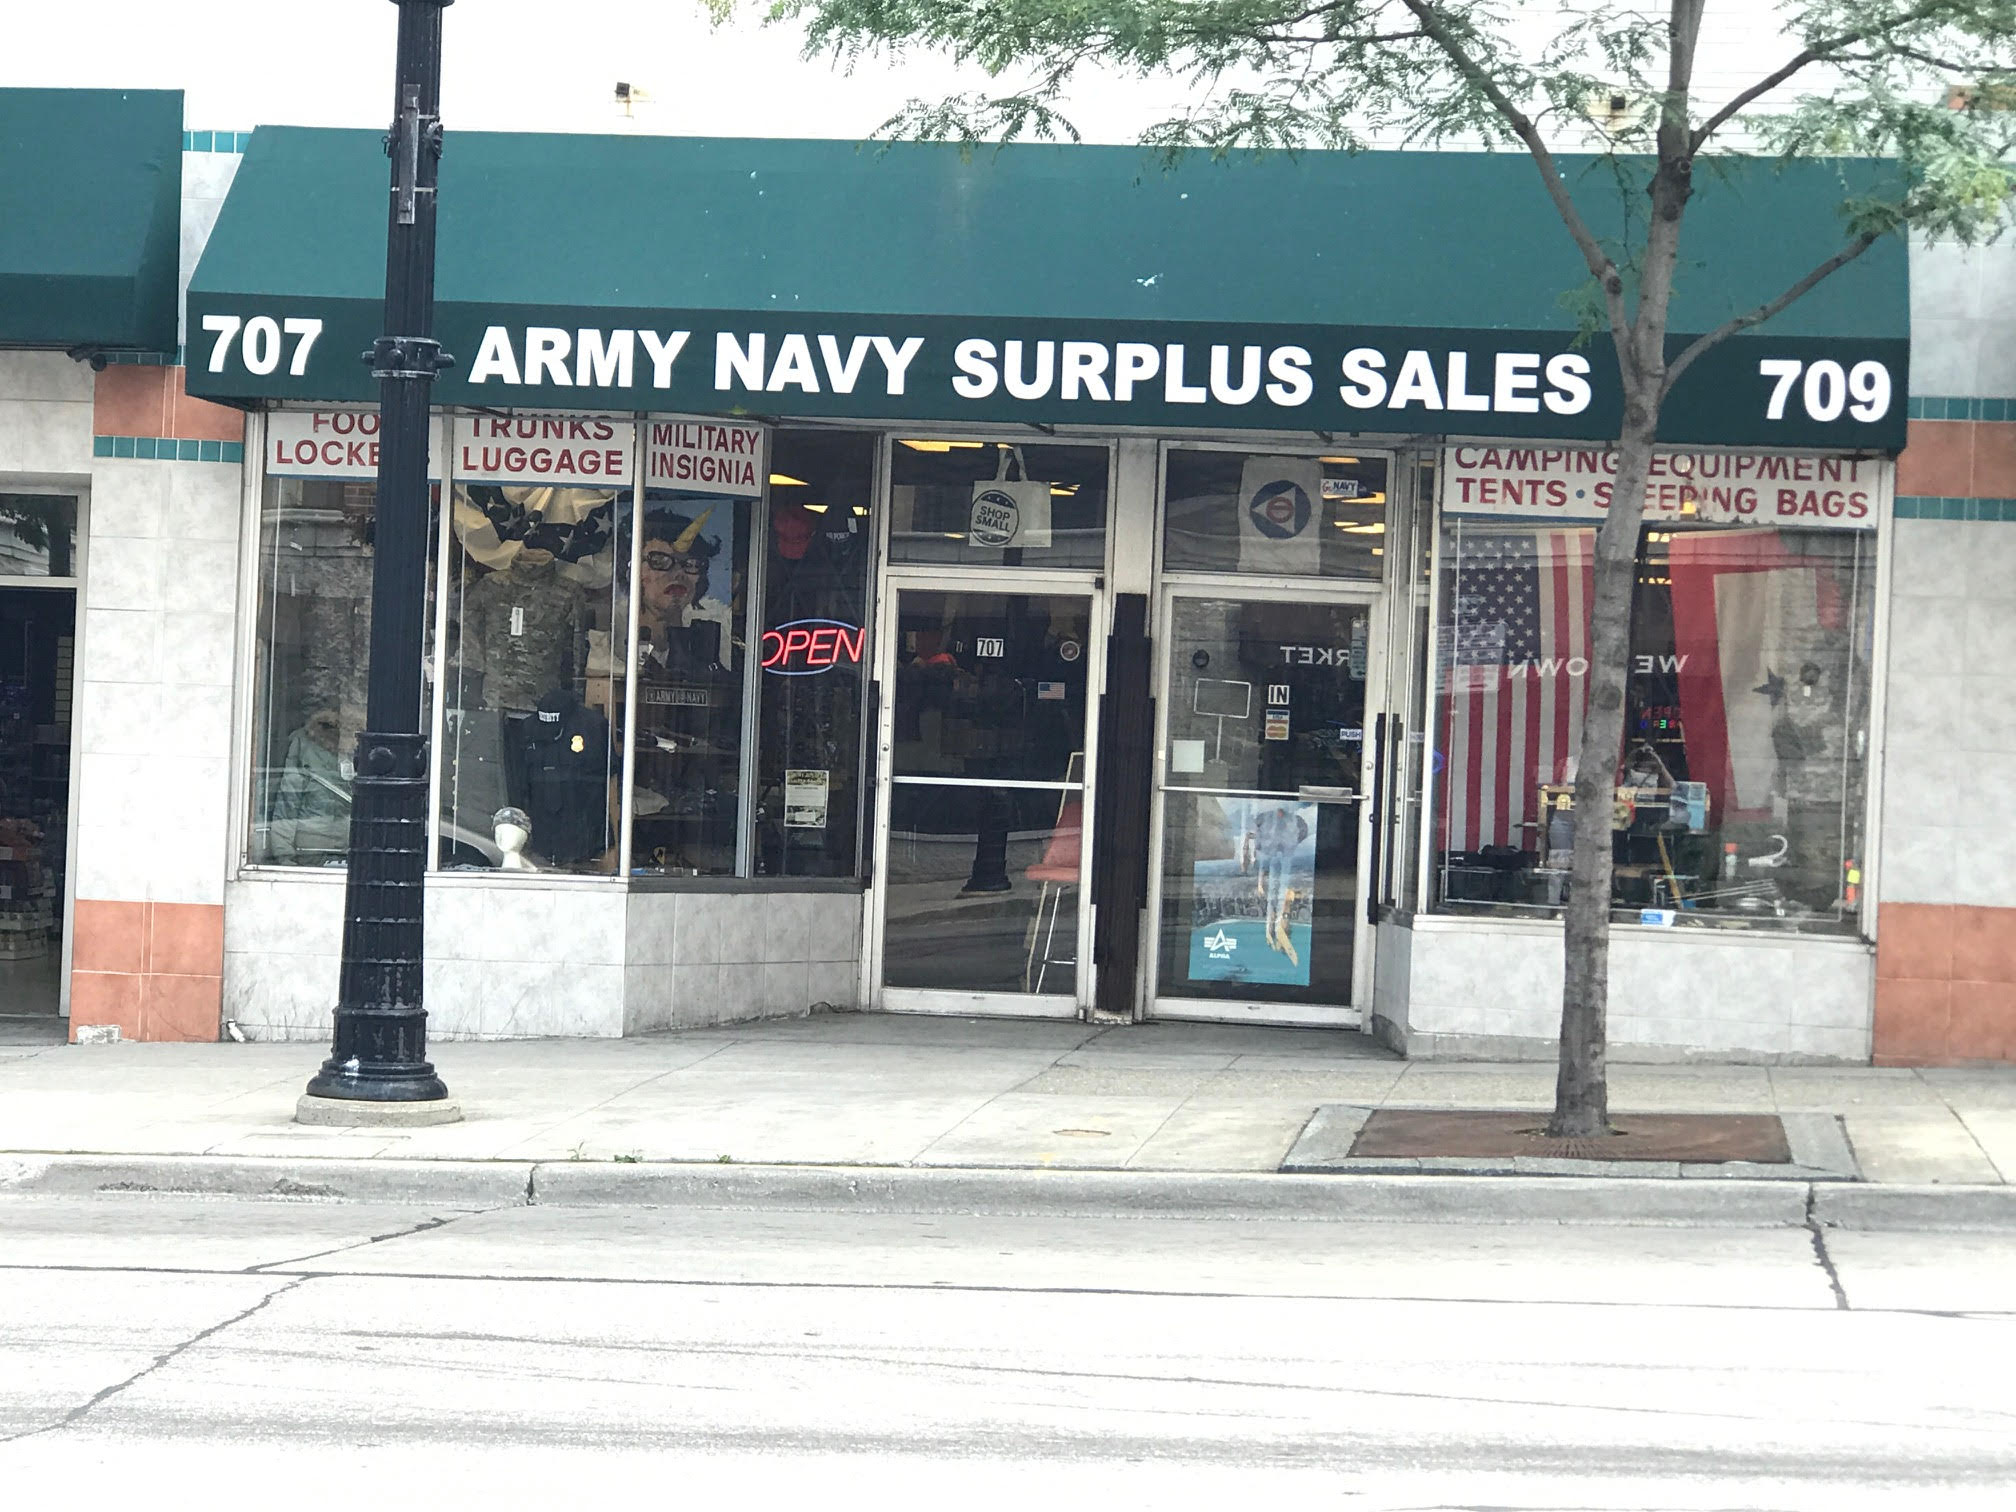 Army Navy Surplus Sales features unique owner, history and merch